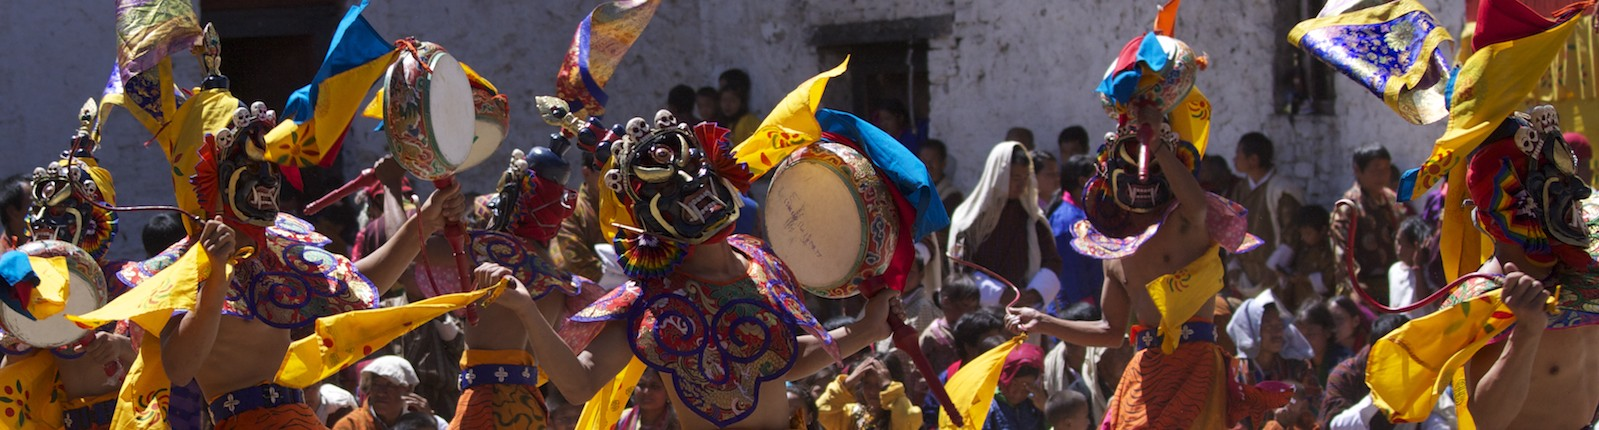 Bhutan – Festivals and Fables